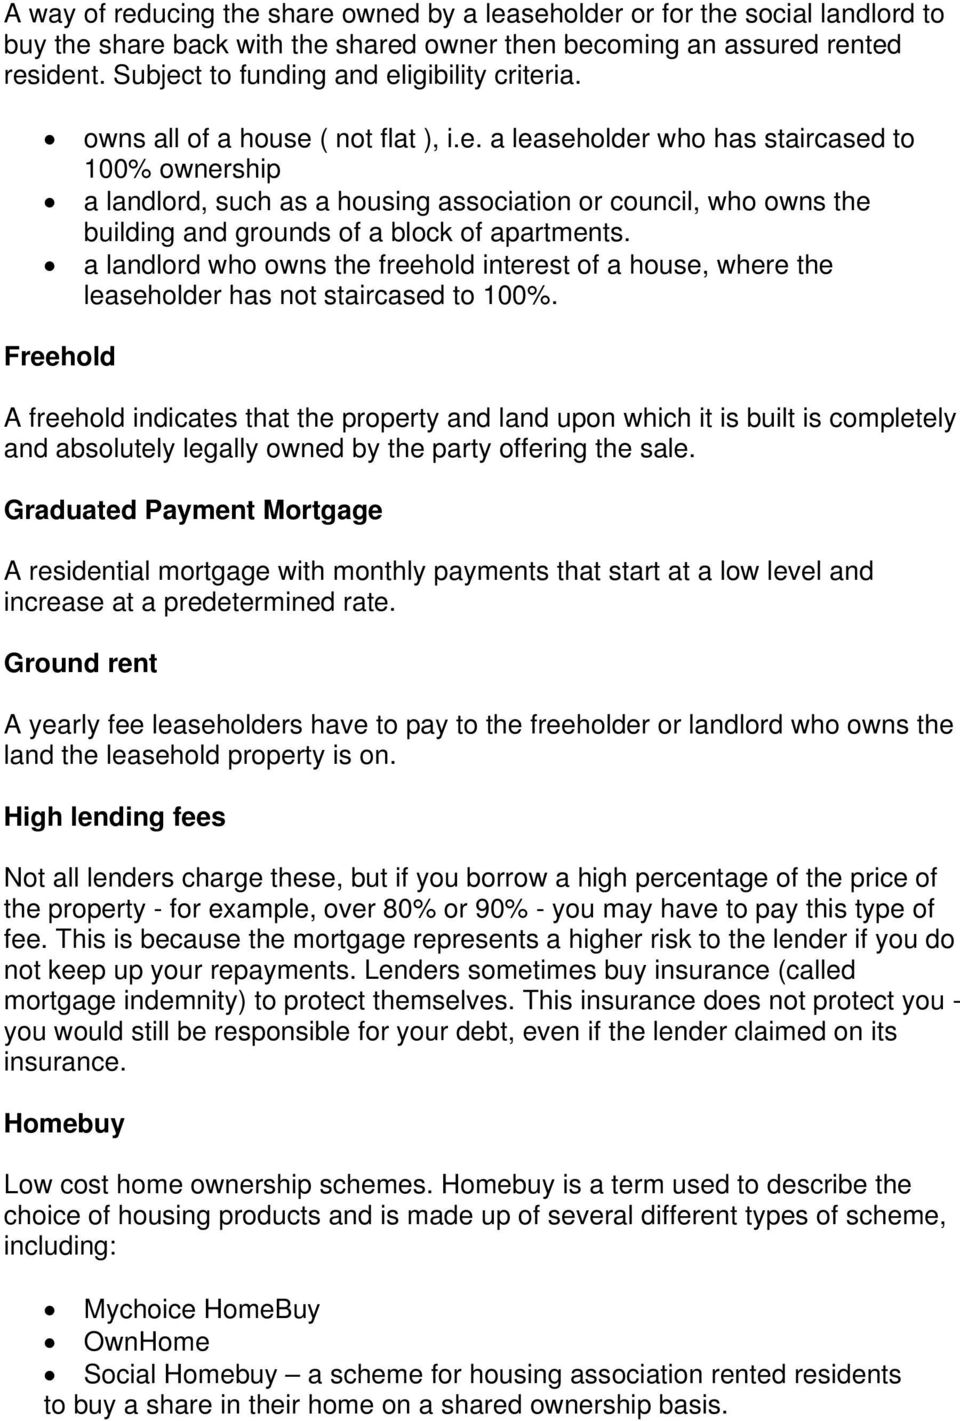 a landlord who owns the freehold interest of a house, where the leaseholder has not staircased to 100%.